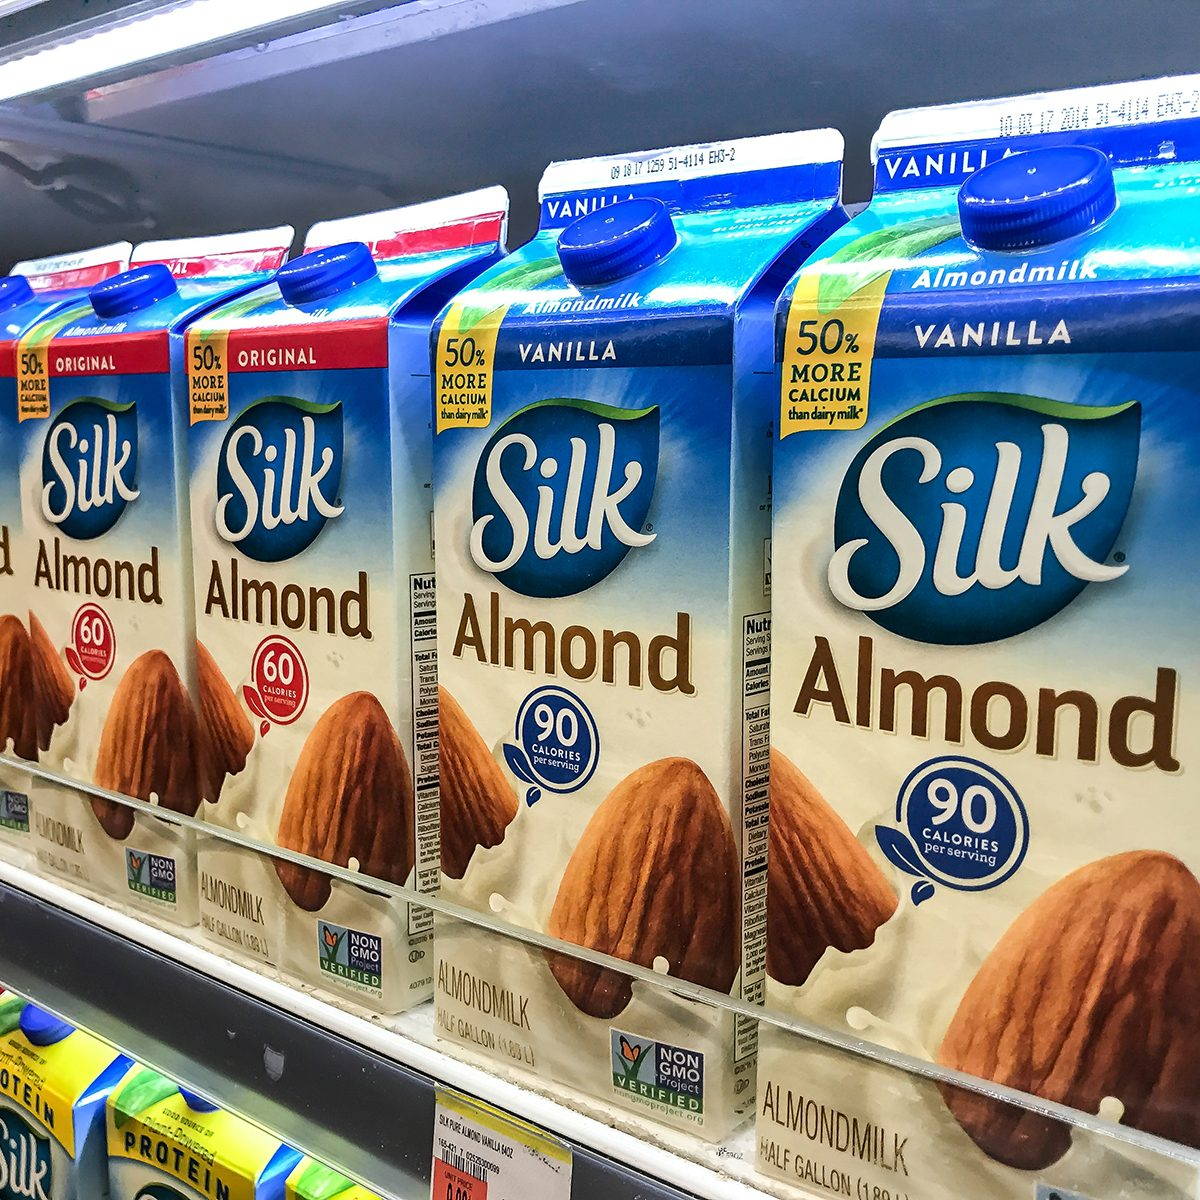 Cartons of almond milk stand on a shelf in a supermarket.